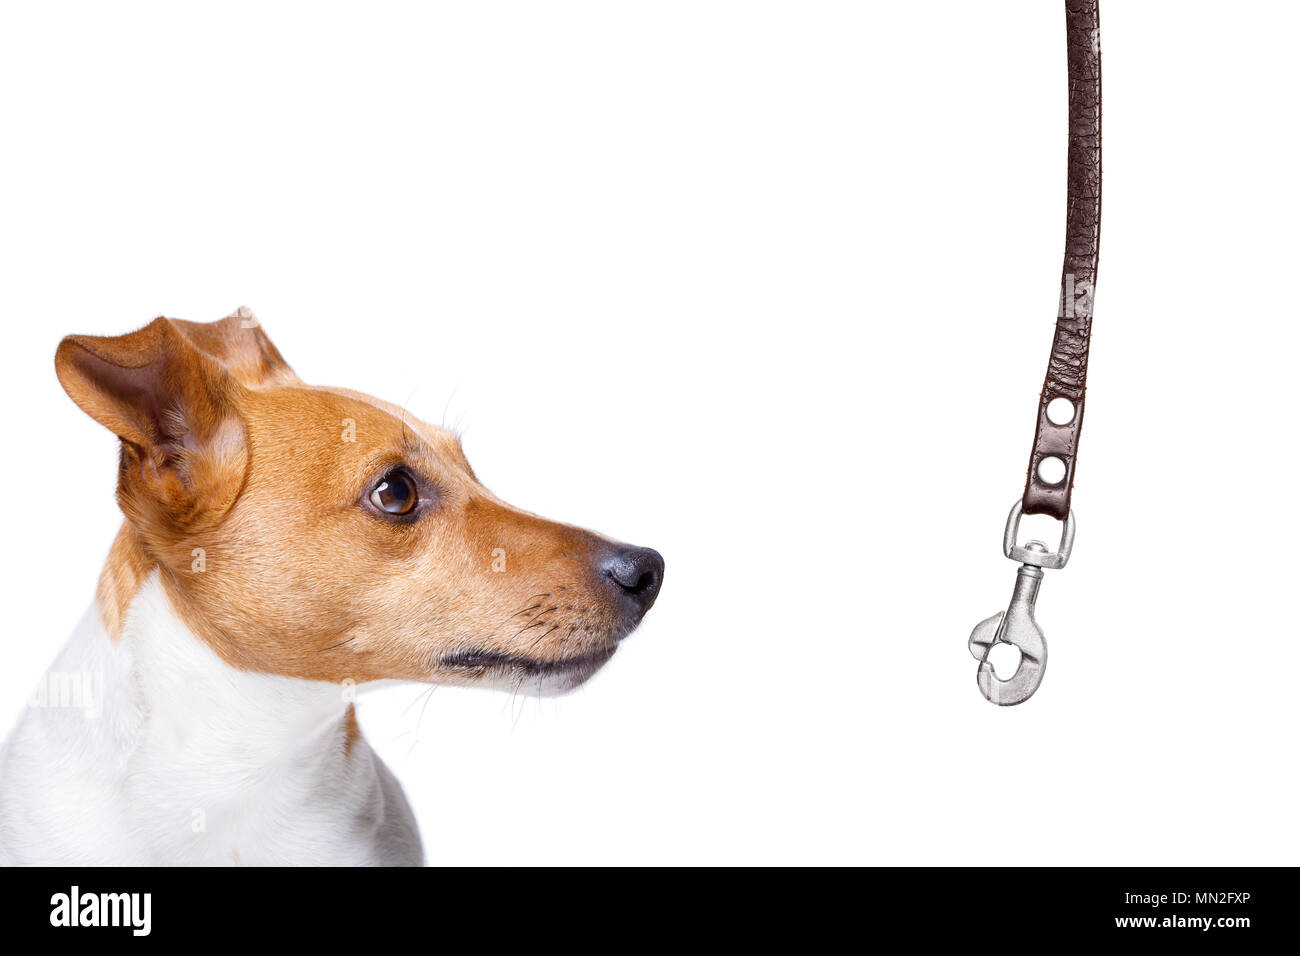 dog waiting for owner to play  and go for a walk with leash, isolated on white background - Stock Image